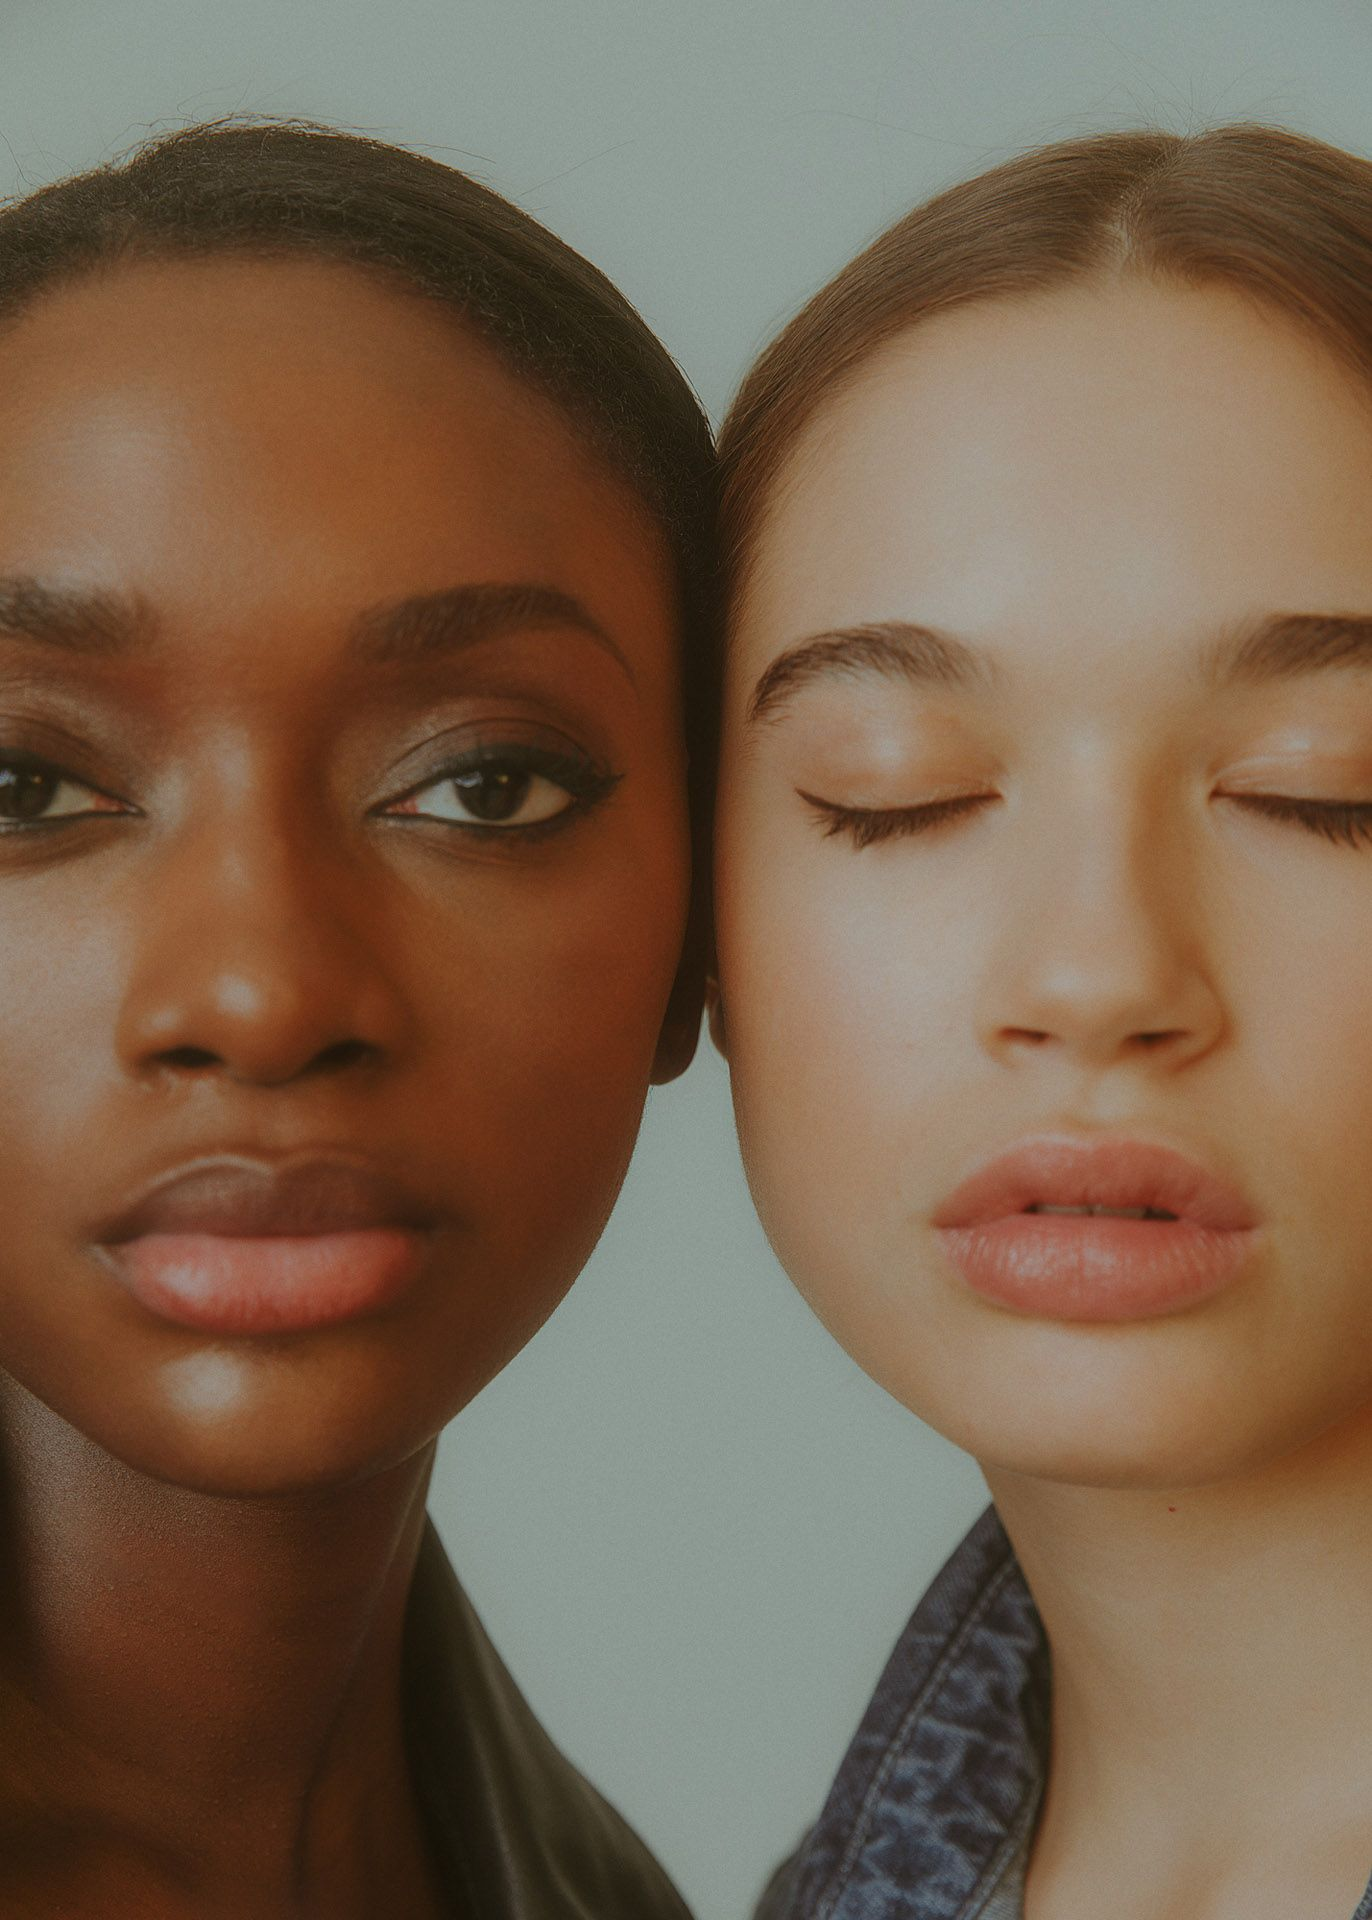 two models shot by Kelly Jacob